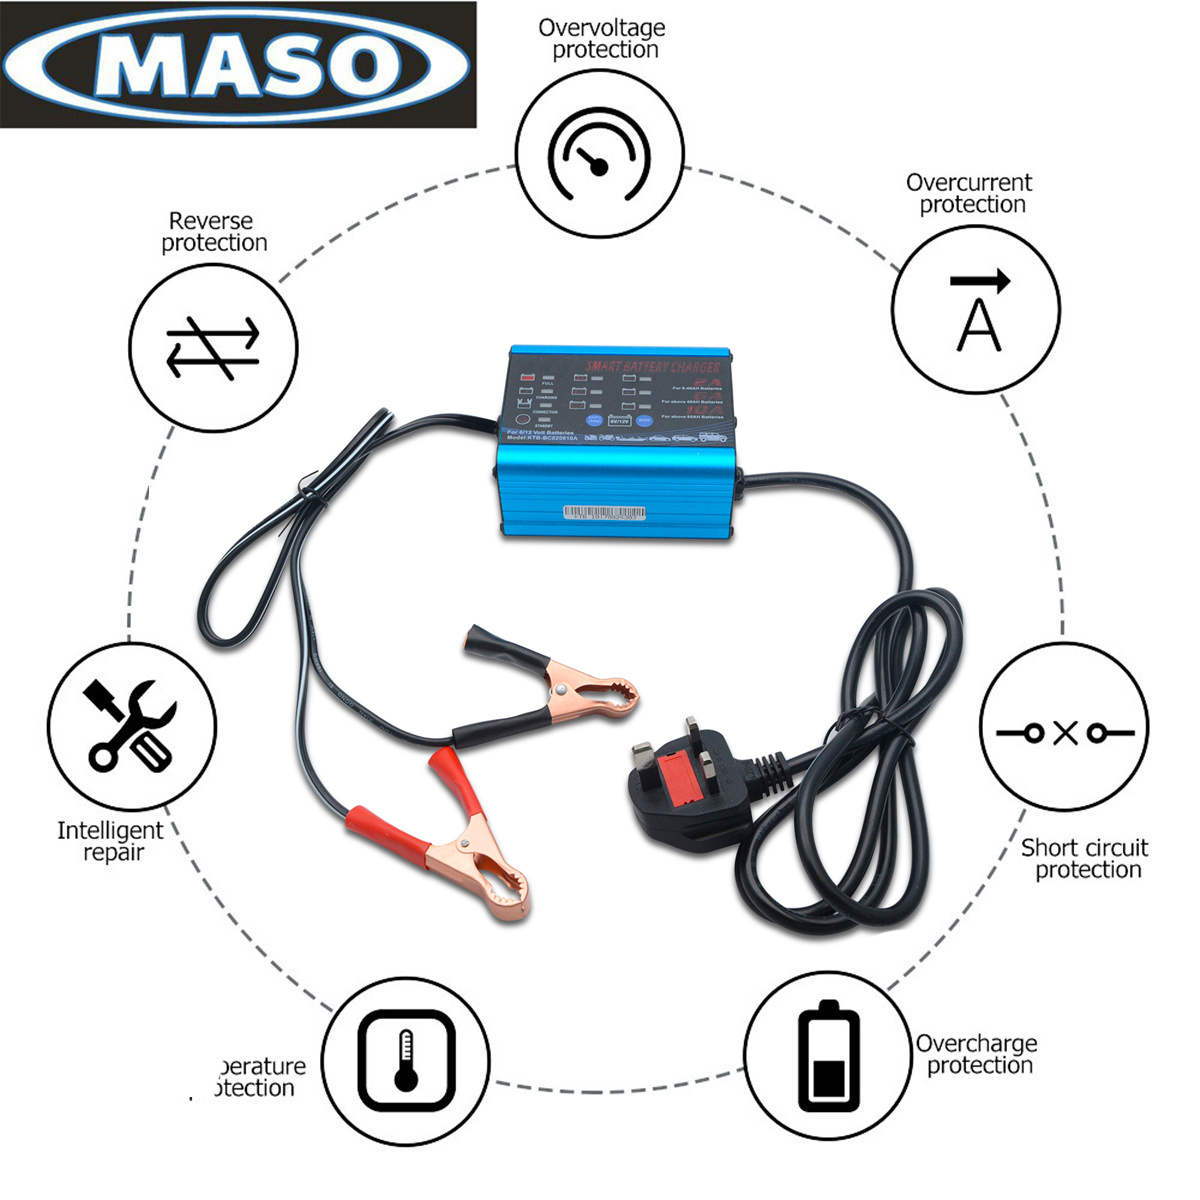 12 Volt 10a 12v 6v Automatic Intelligent Battery Charger Trickle Circuit Desulfator Kit With Auto Cut Off Fast Car Van 696395966825 Ebay